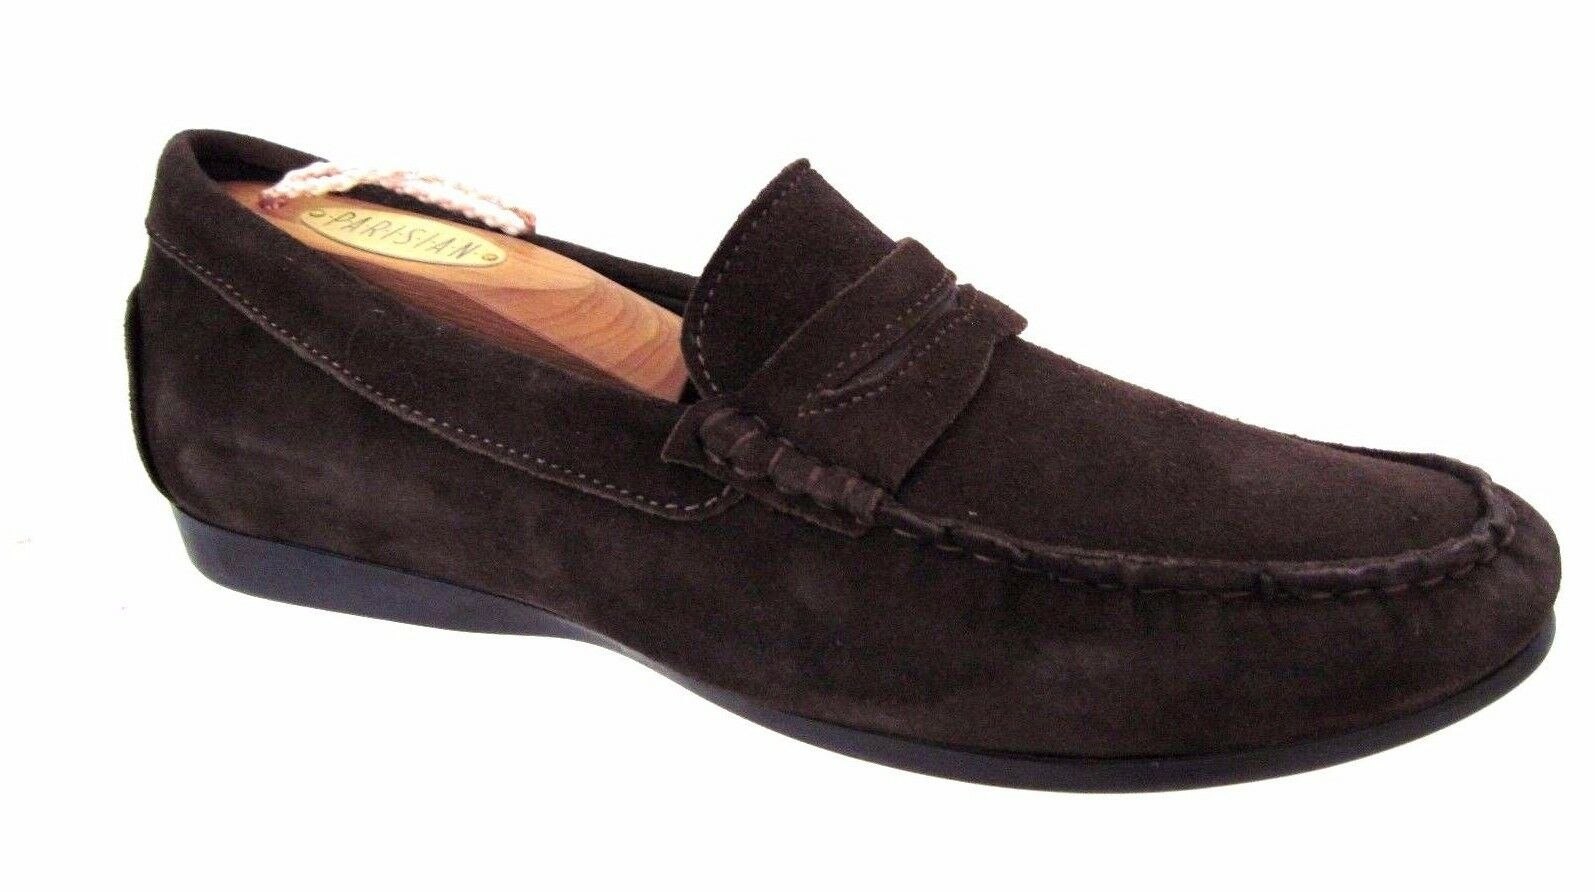 MUNRO American Braun Suede Penny Style Loafers Größe 8 M USA